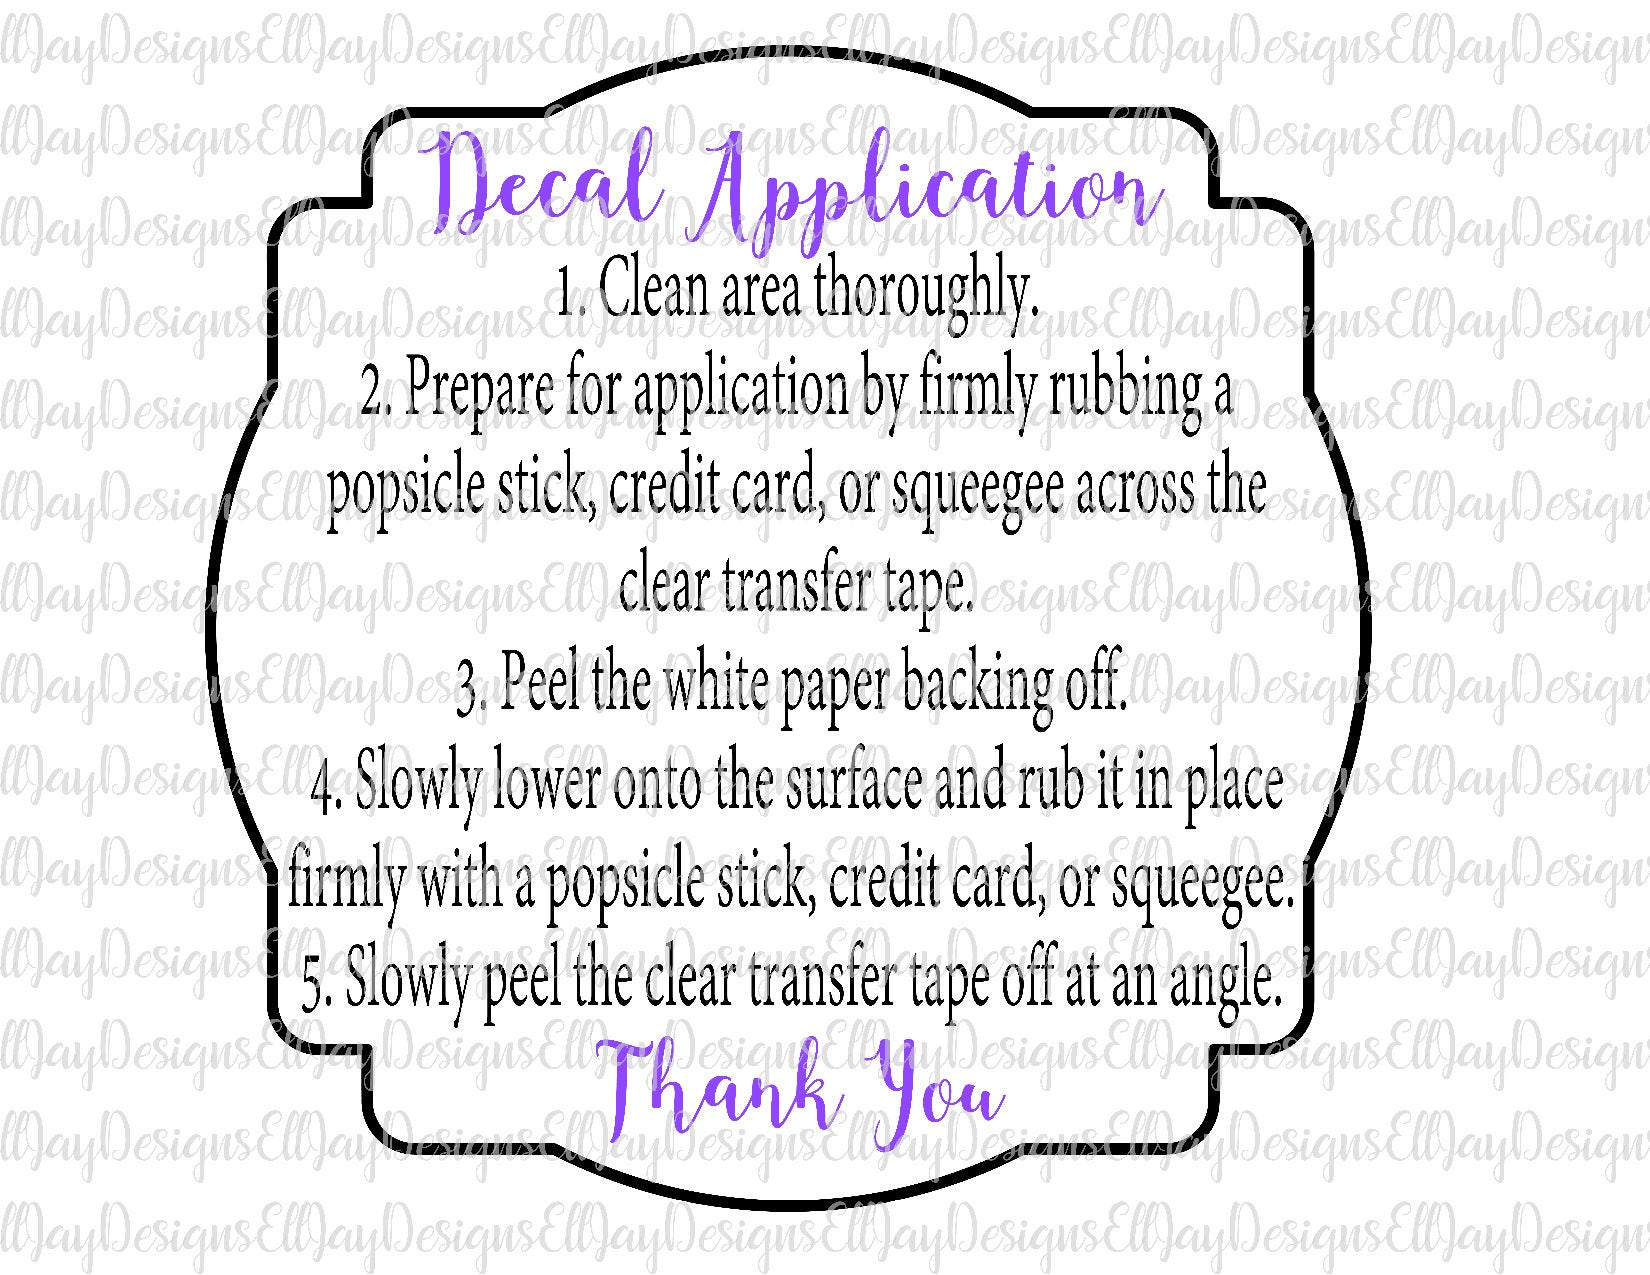 Decal Application Instruction Card Svg Cut File Digital - Custom vinyl decal application instructionscare card printable care card instructions printable care